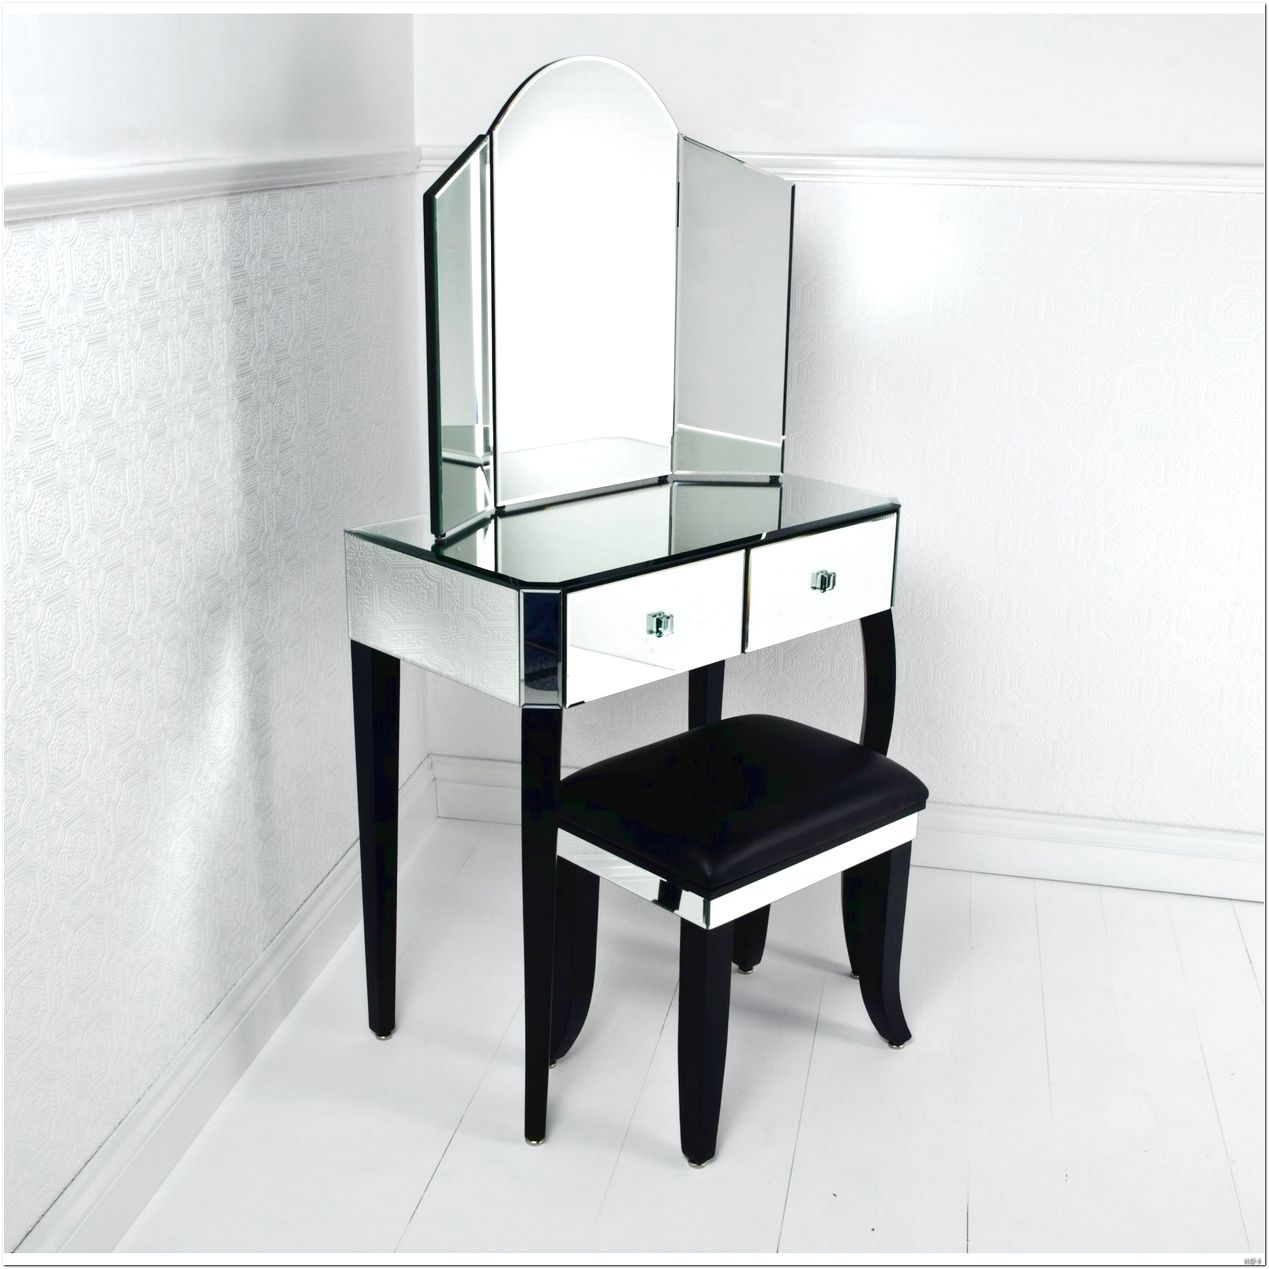 Contemporary Dressing Table Mirrors Design Ideas Interior Design Throughout Contemporary Dressing Table Mirrors (Image 5 of 15)